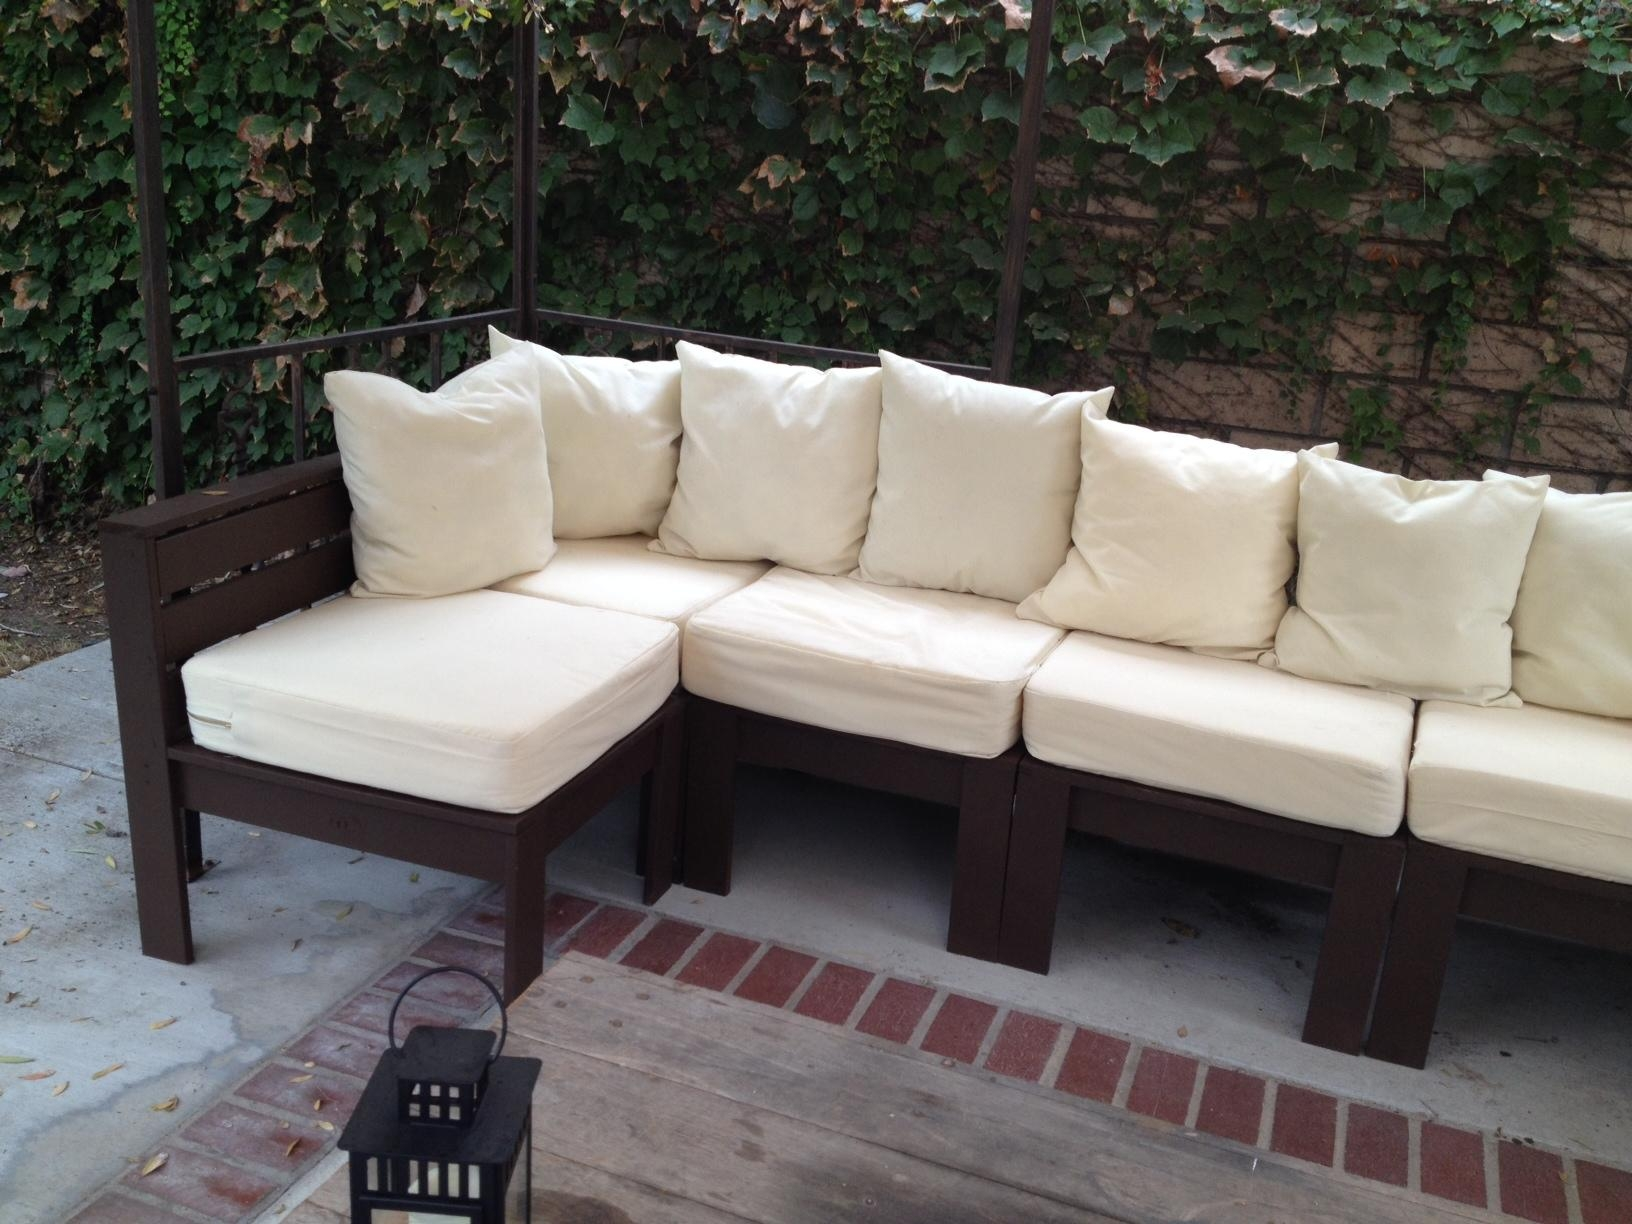 Ana White | Giant Outdoor Sectional – Diy Projects Intended For Ana White Outdoor Sectional Sofas (View 17 of 20)